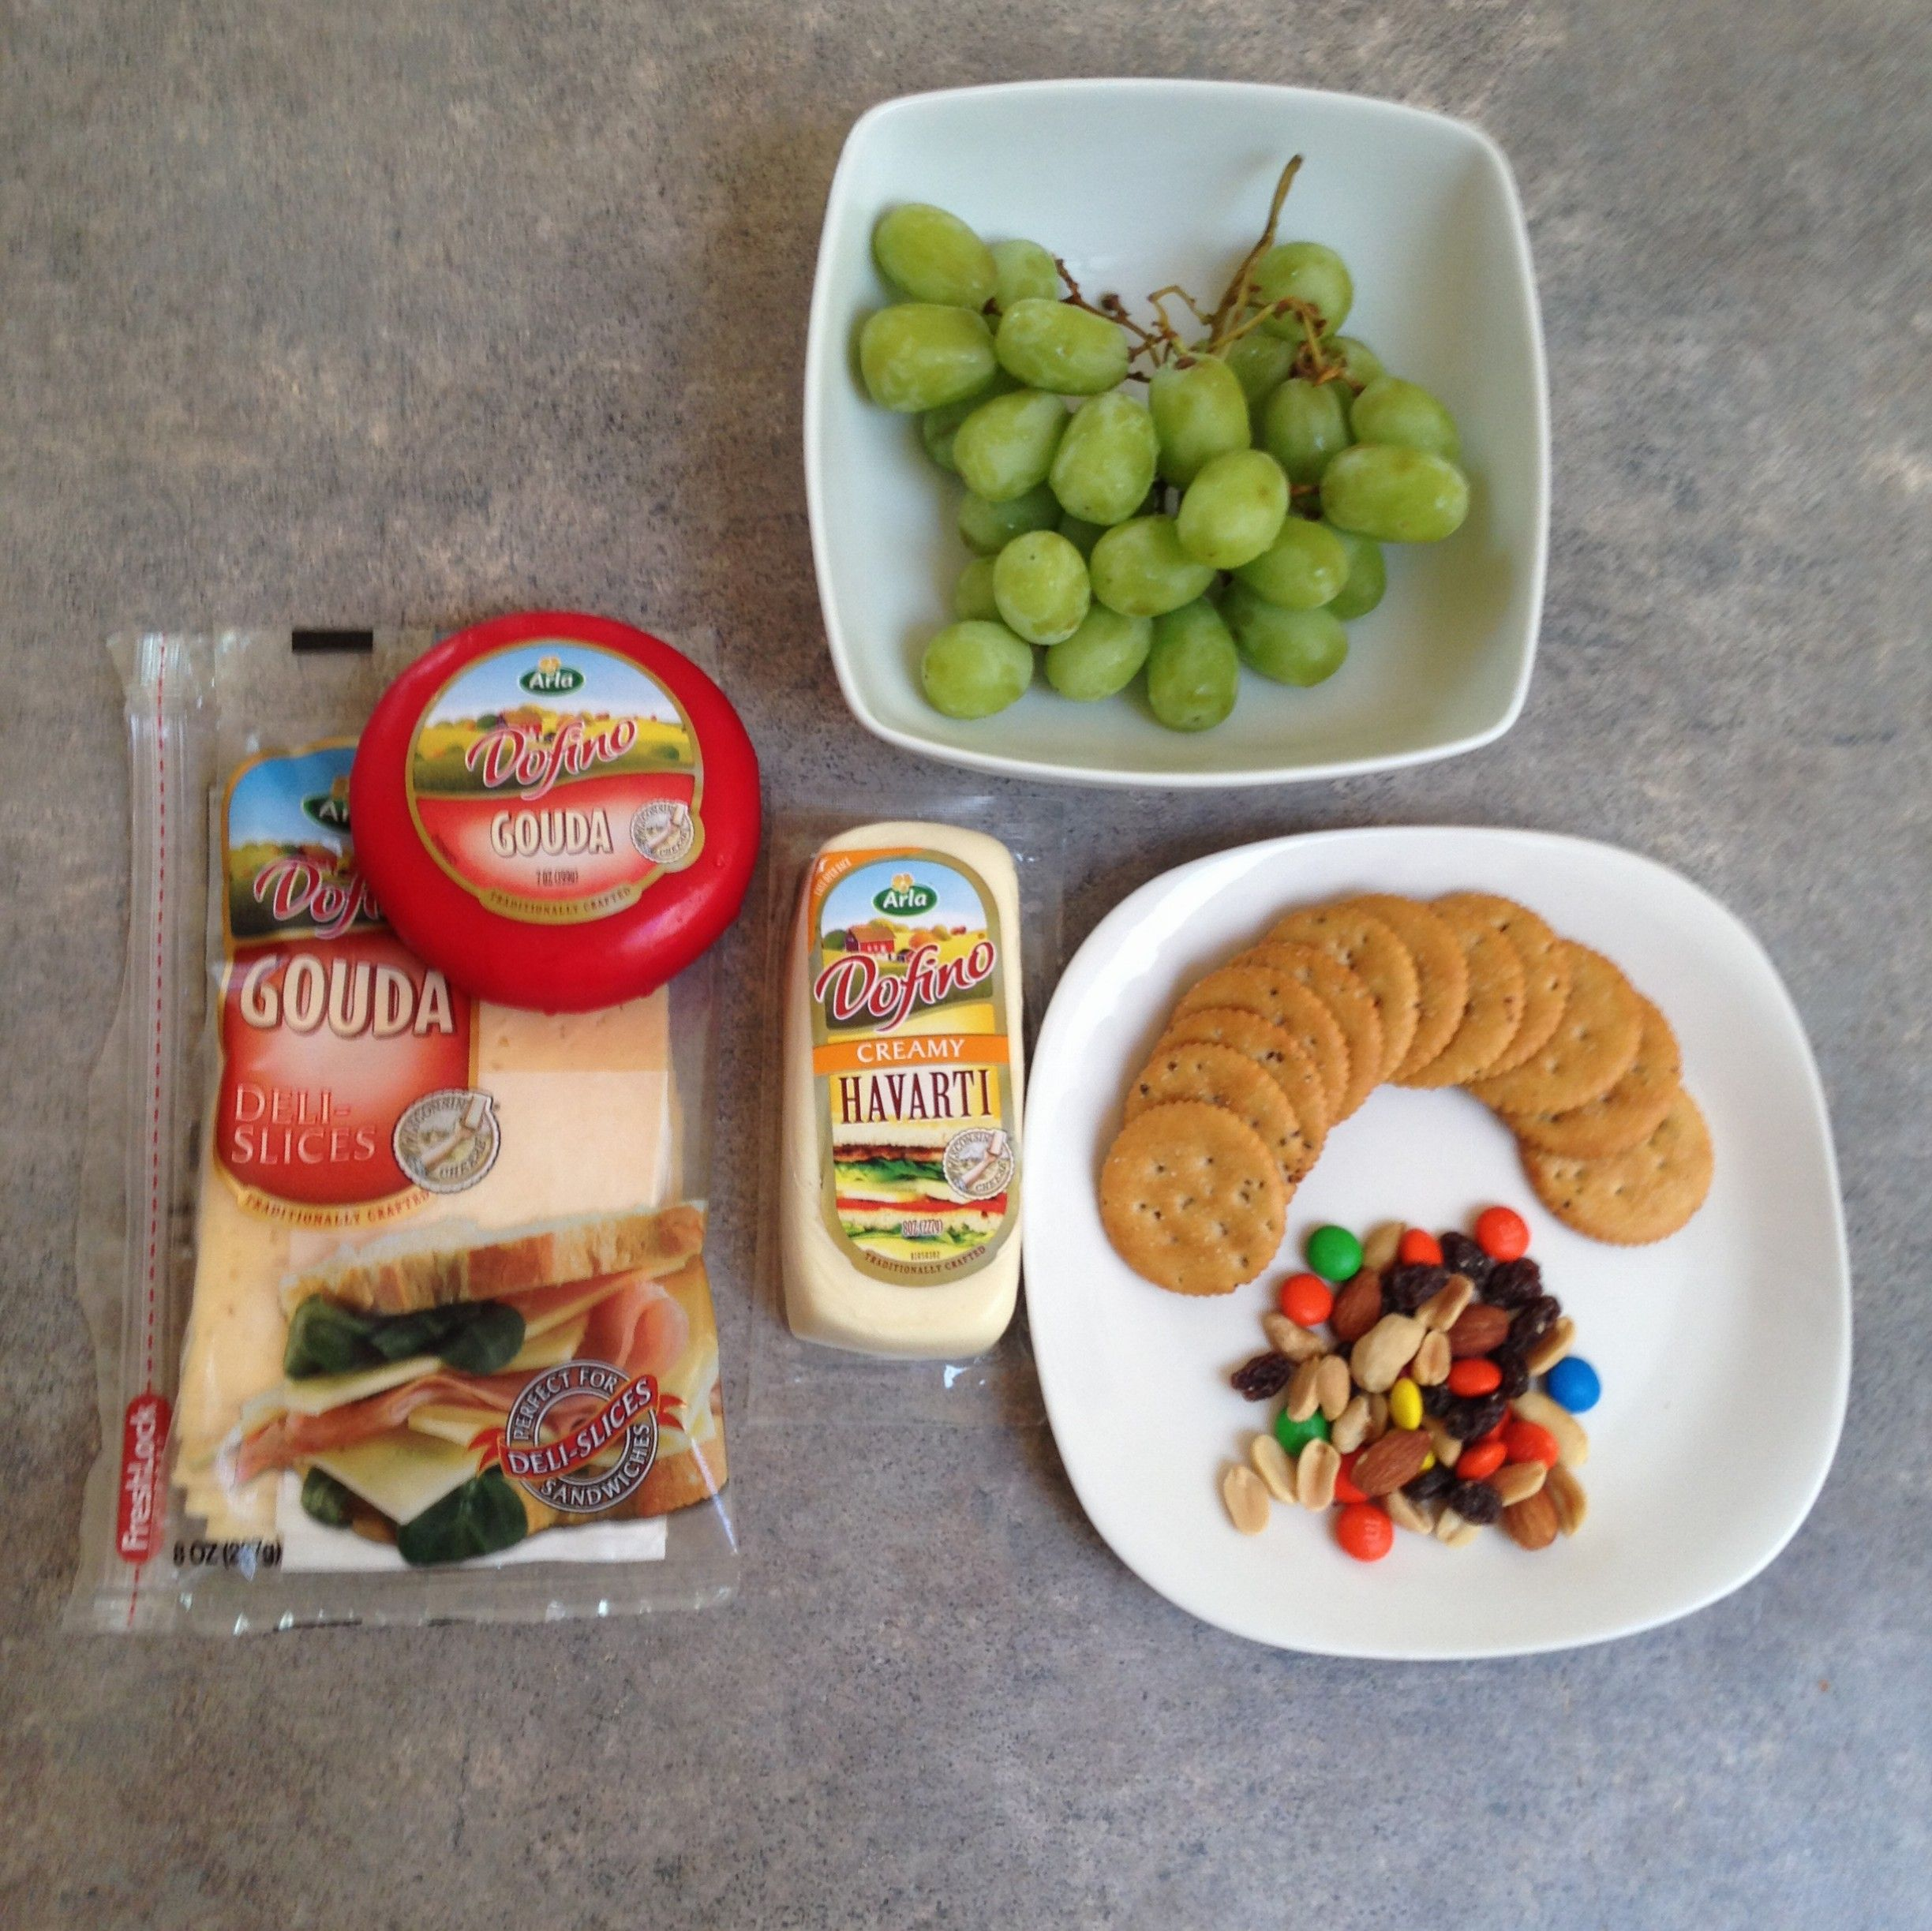 Arla Dofino Cheese Review & Sponsored Giveaway (With